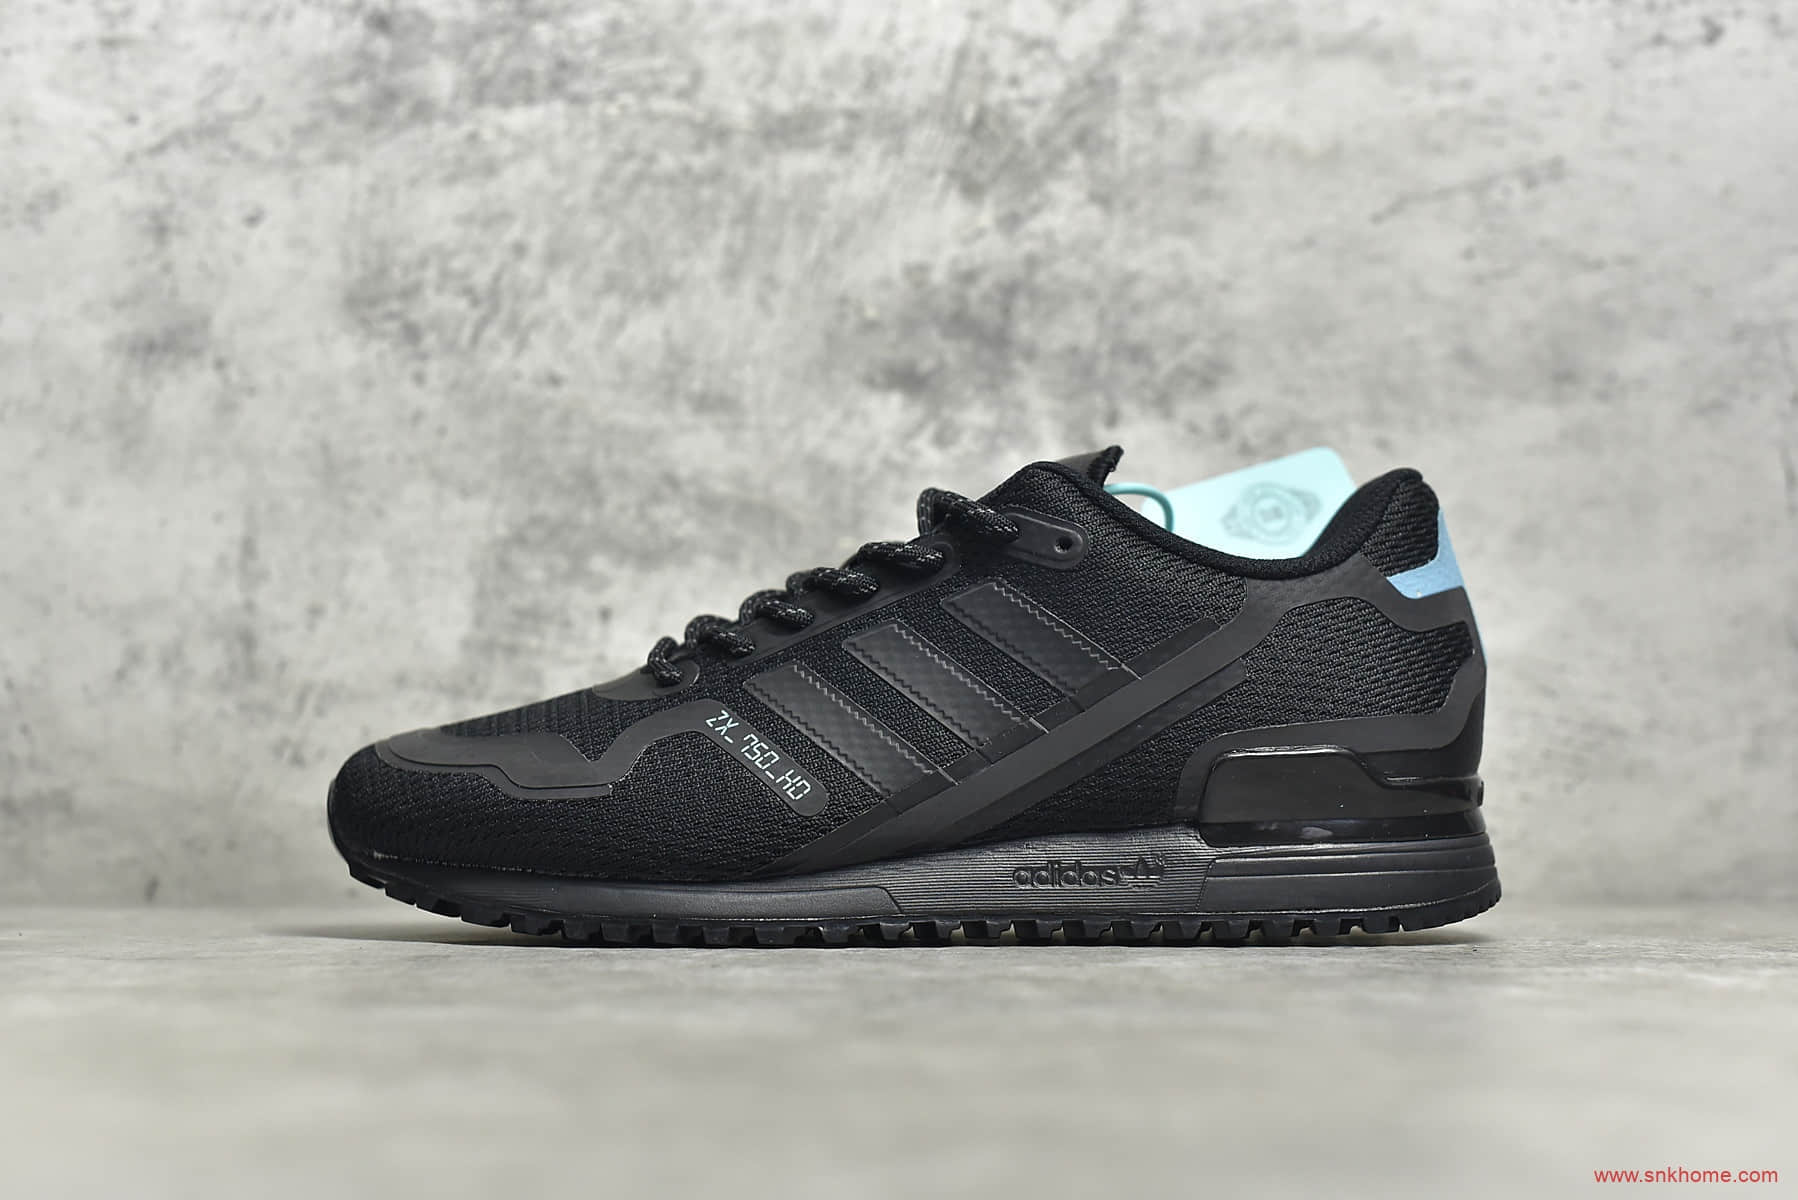 阿迪达斯三叶草ZX700黑色跑鞋 adidas Originals ZX700 HD